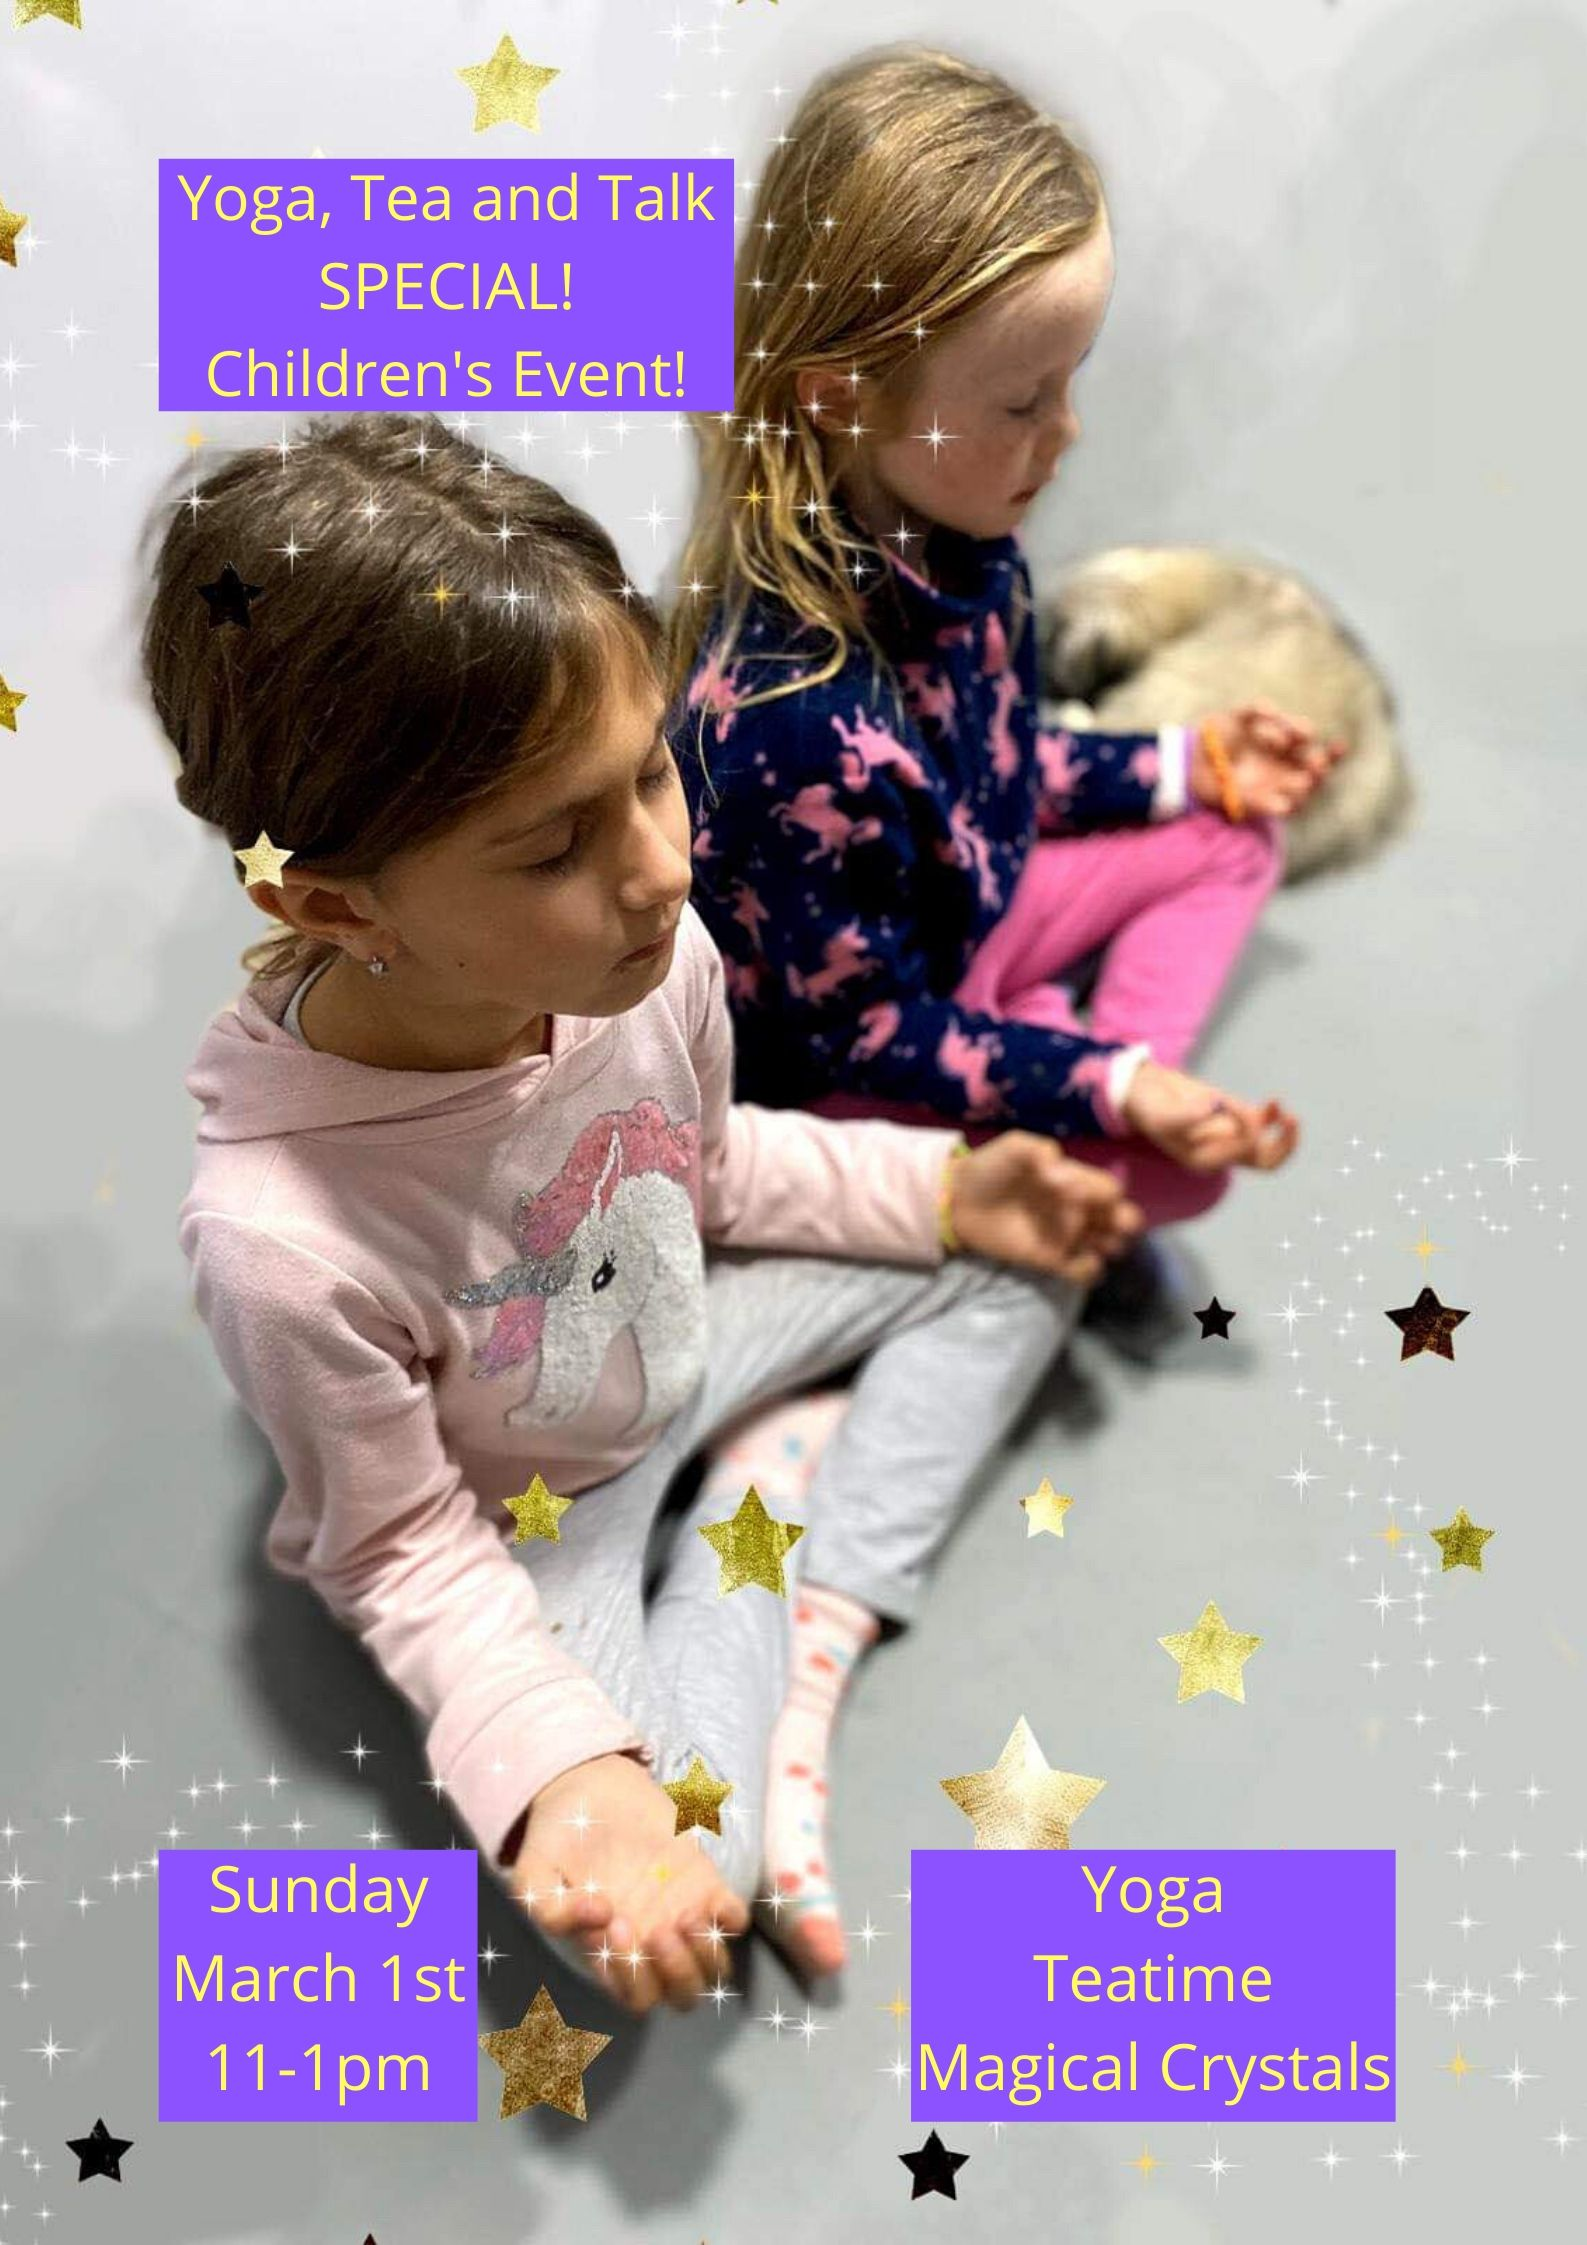 Special Children's Event!